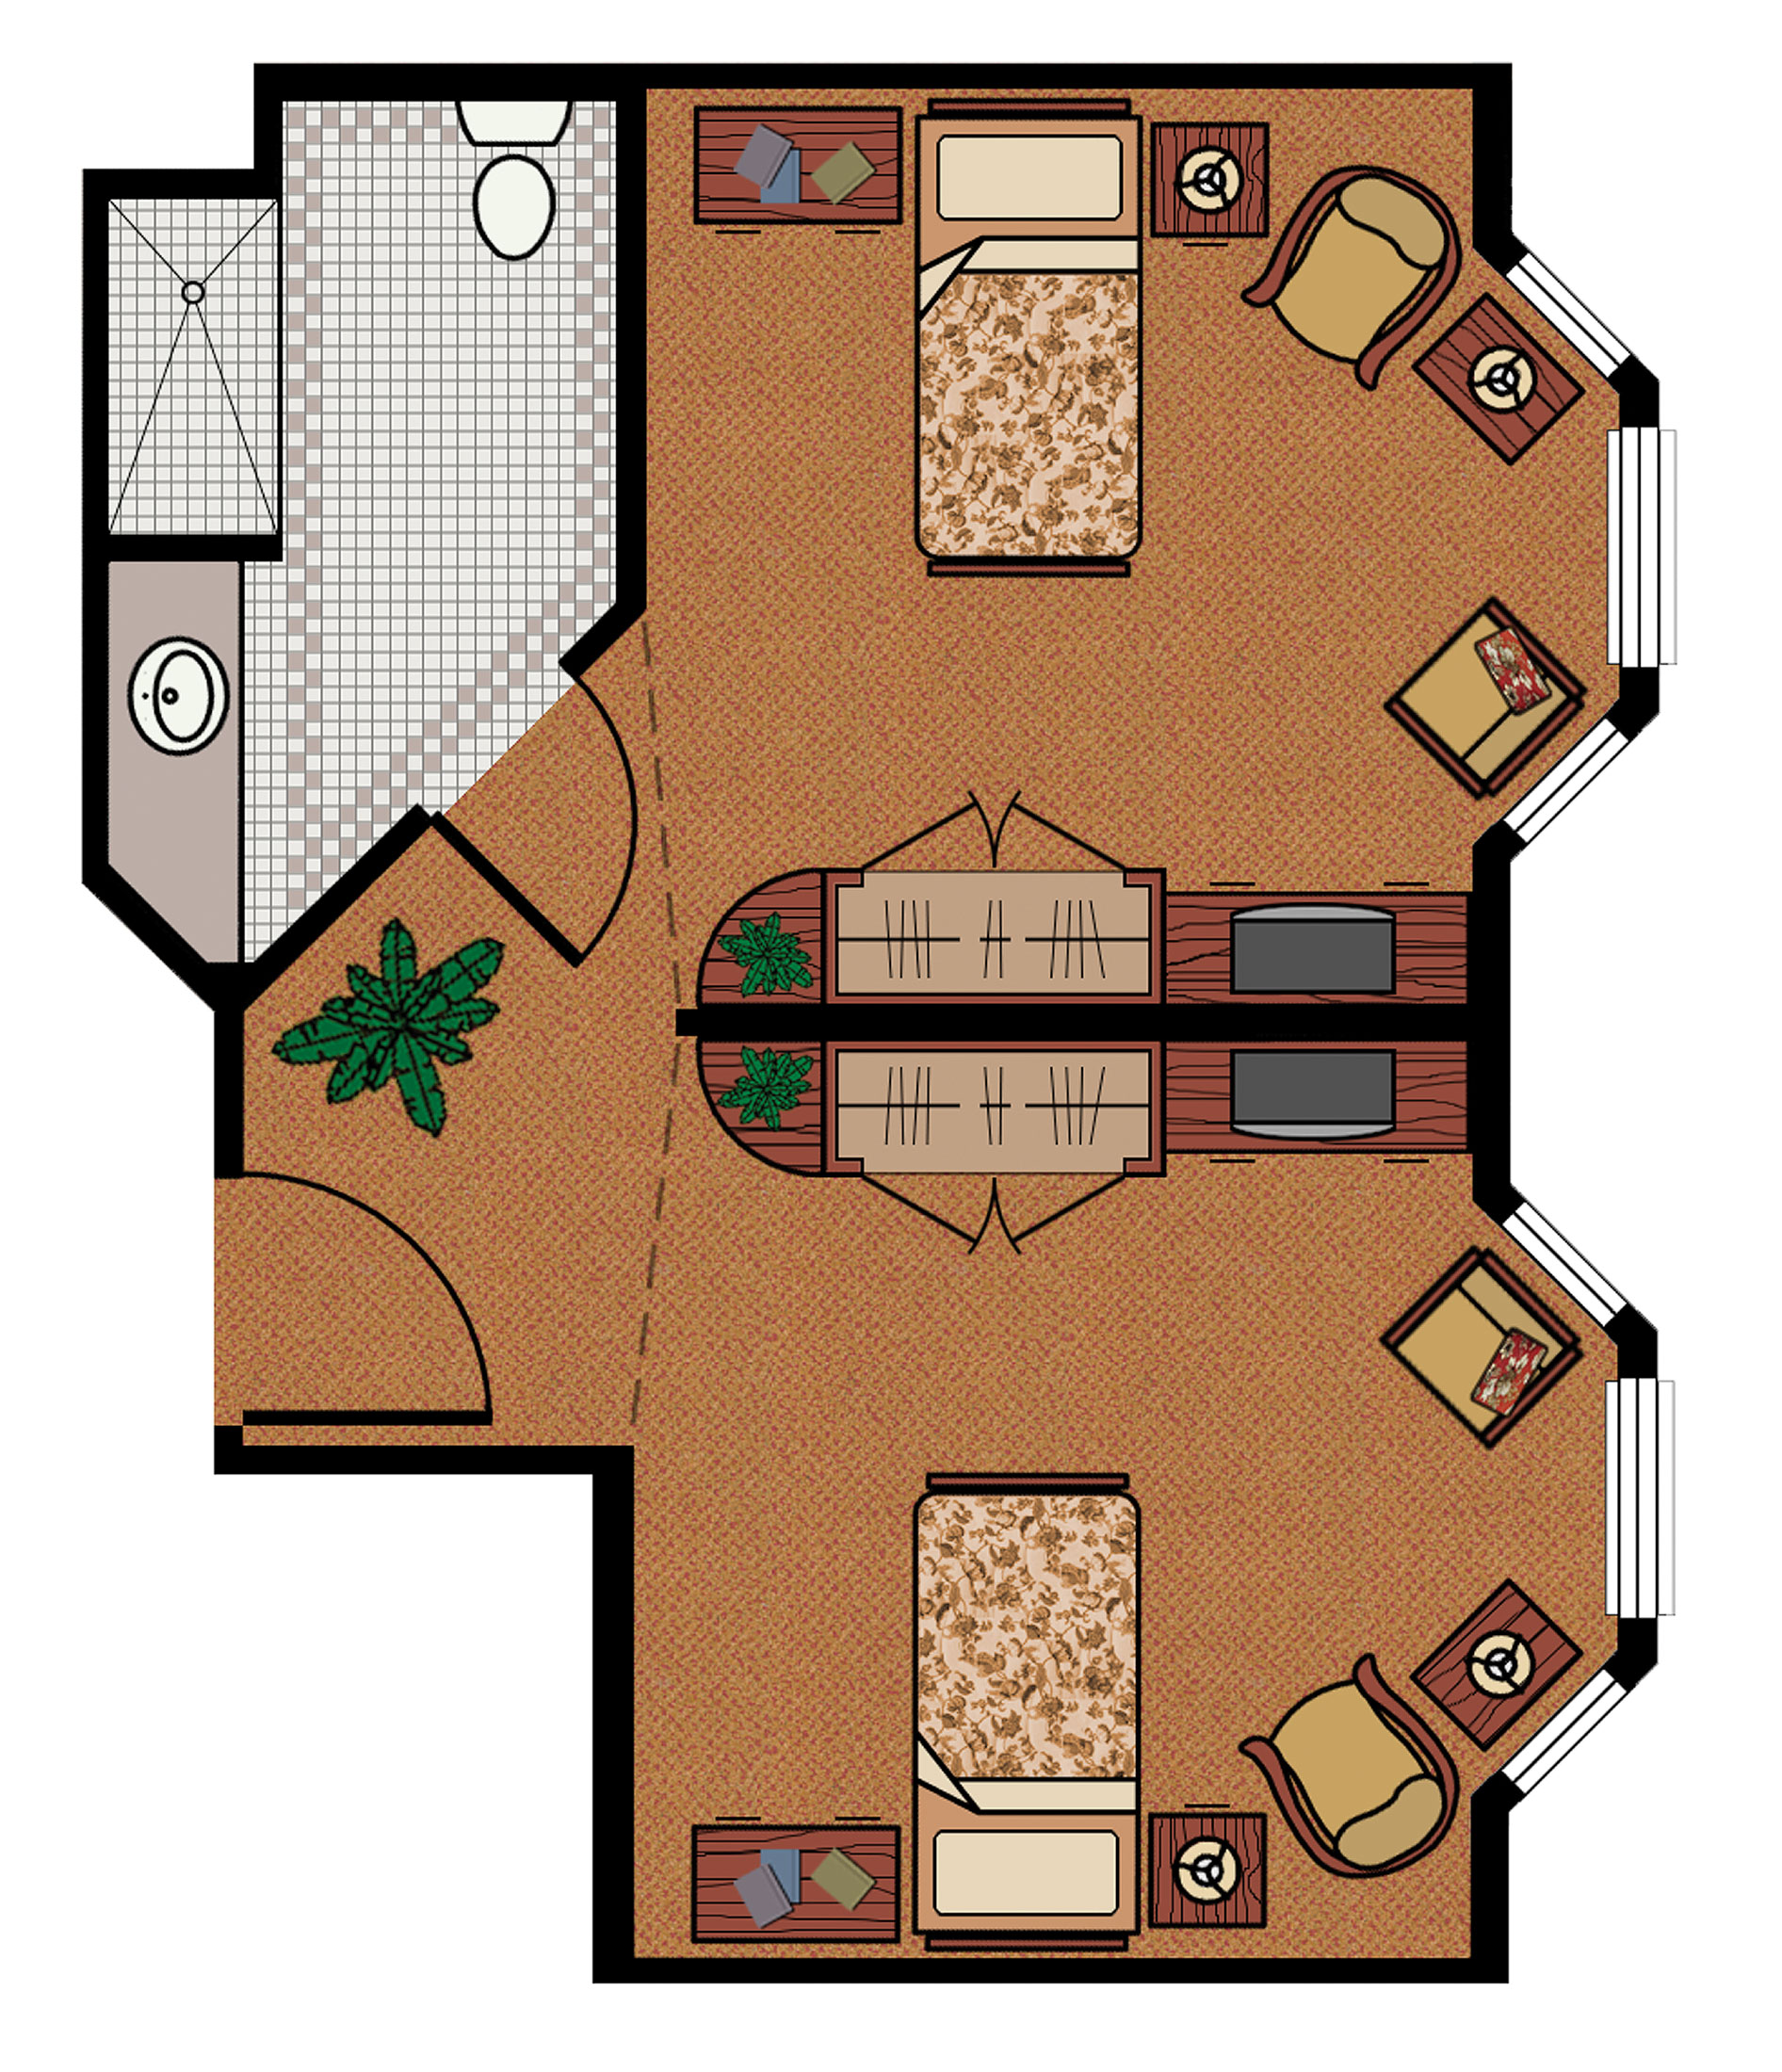 A graphic of the floor plan for a small, private condo